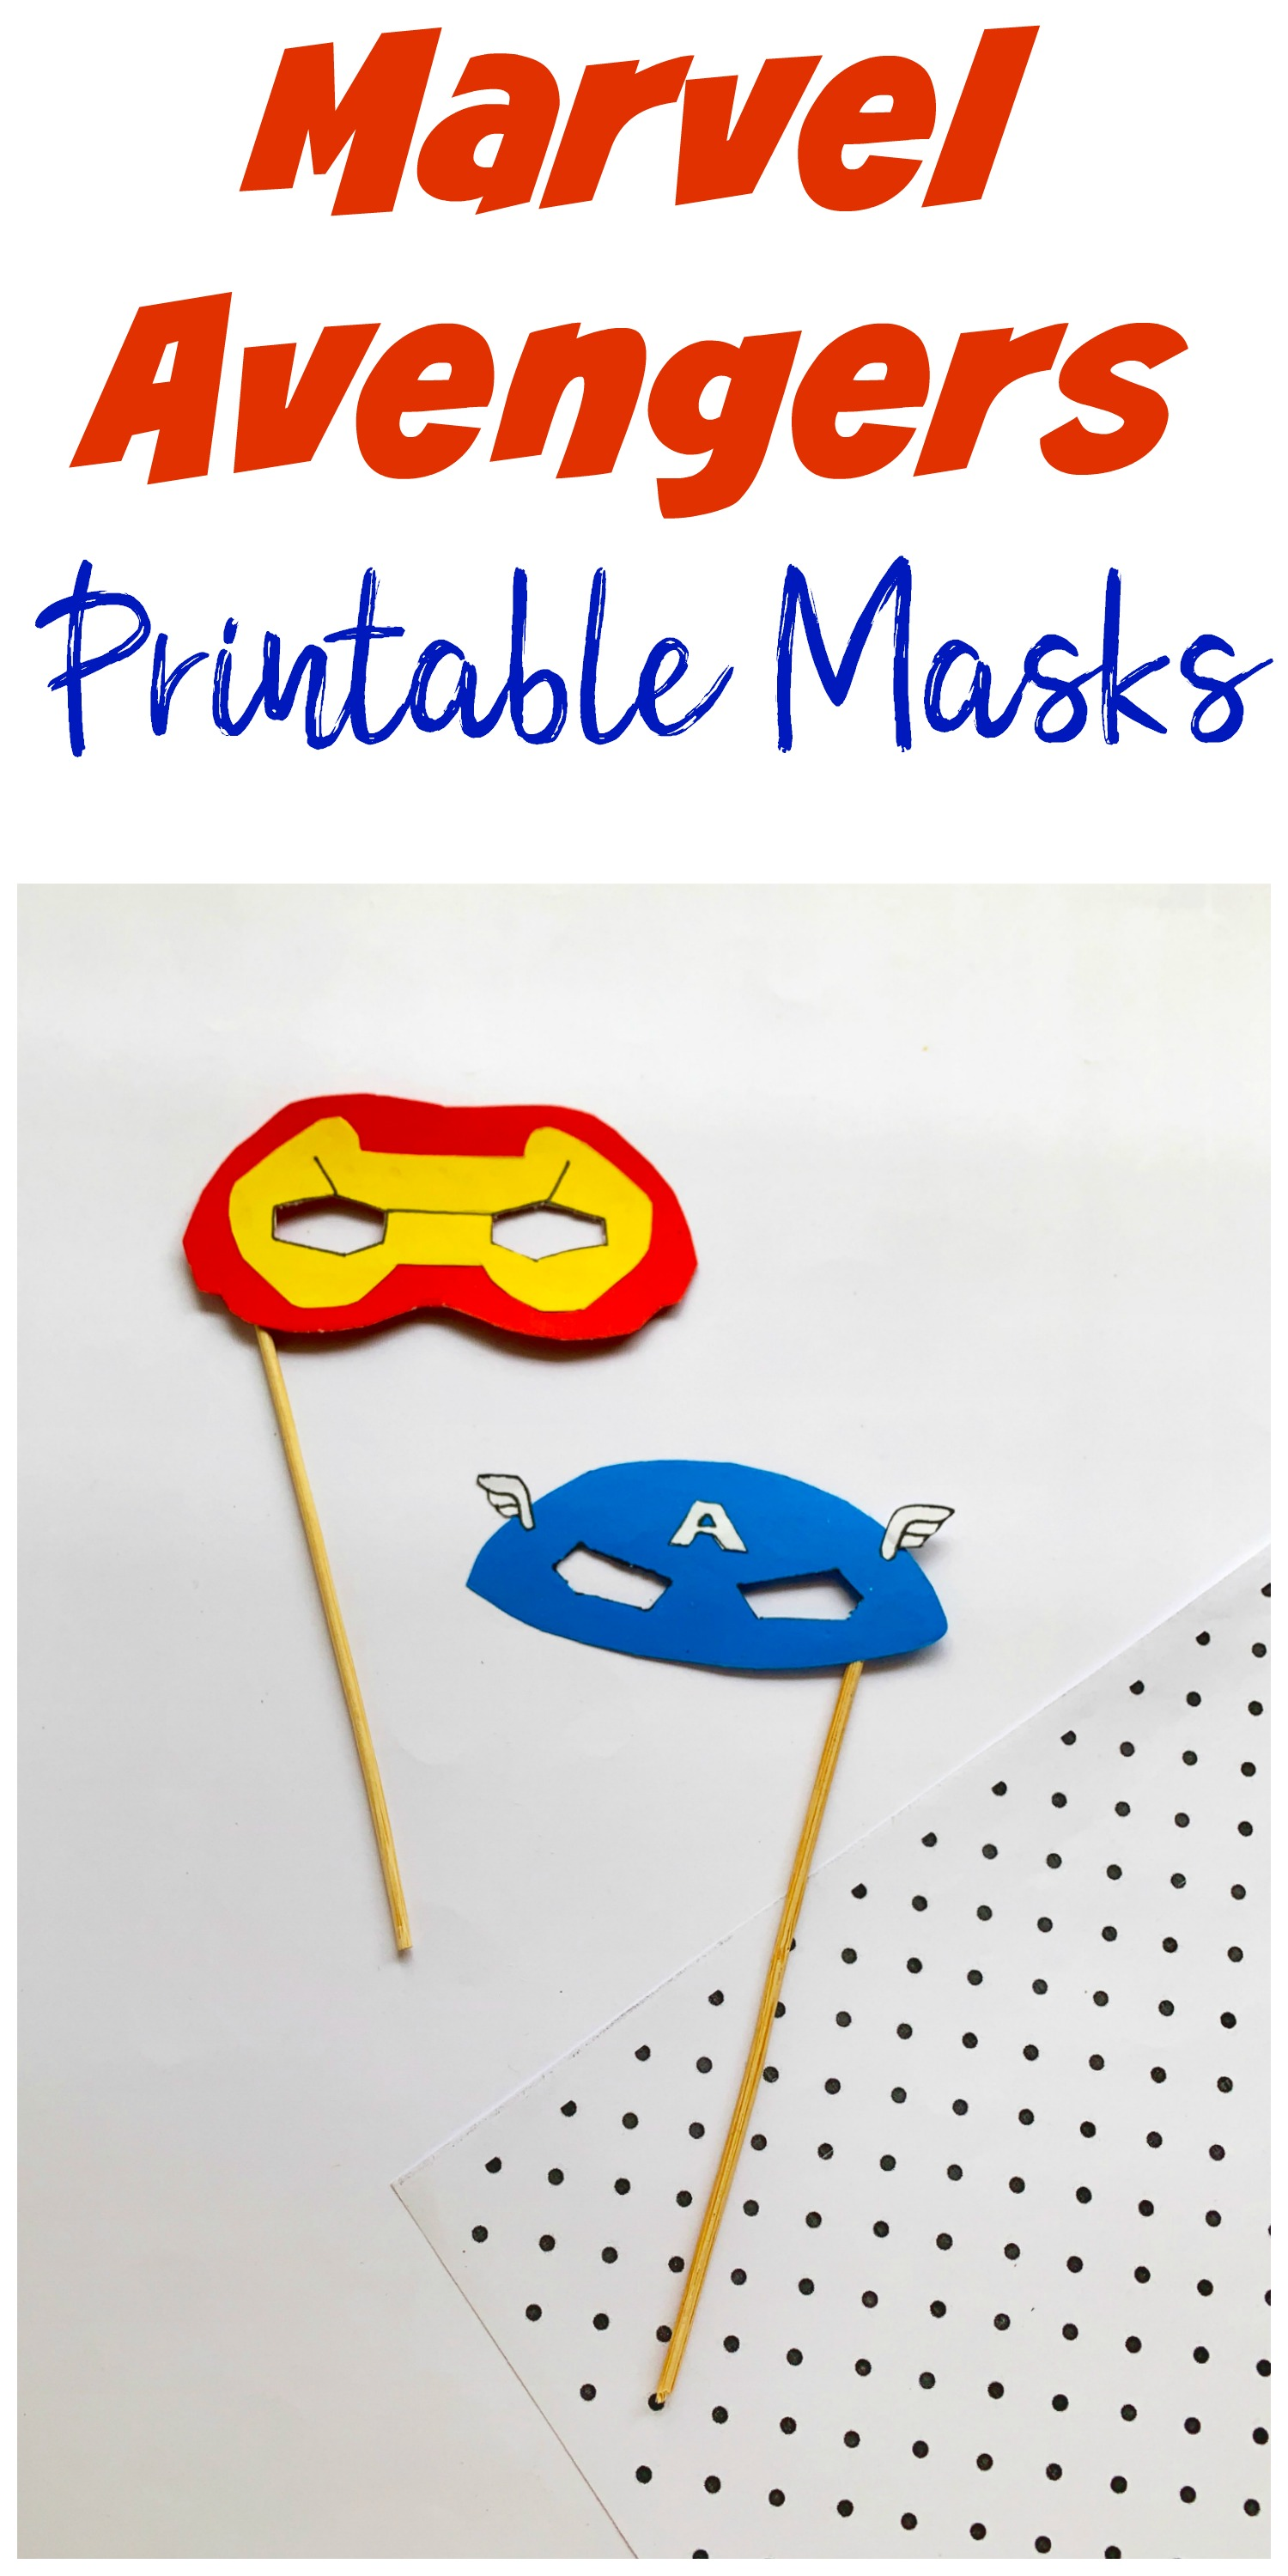 Marvel Avengers Printable Masks